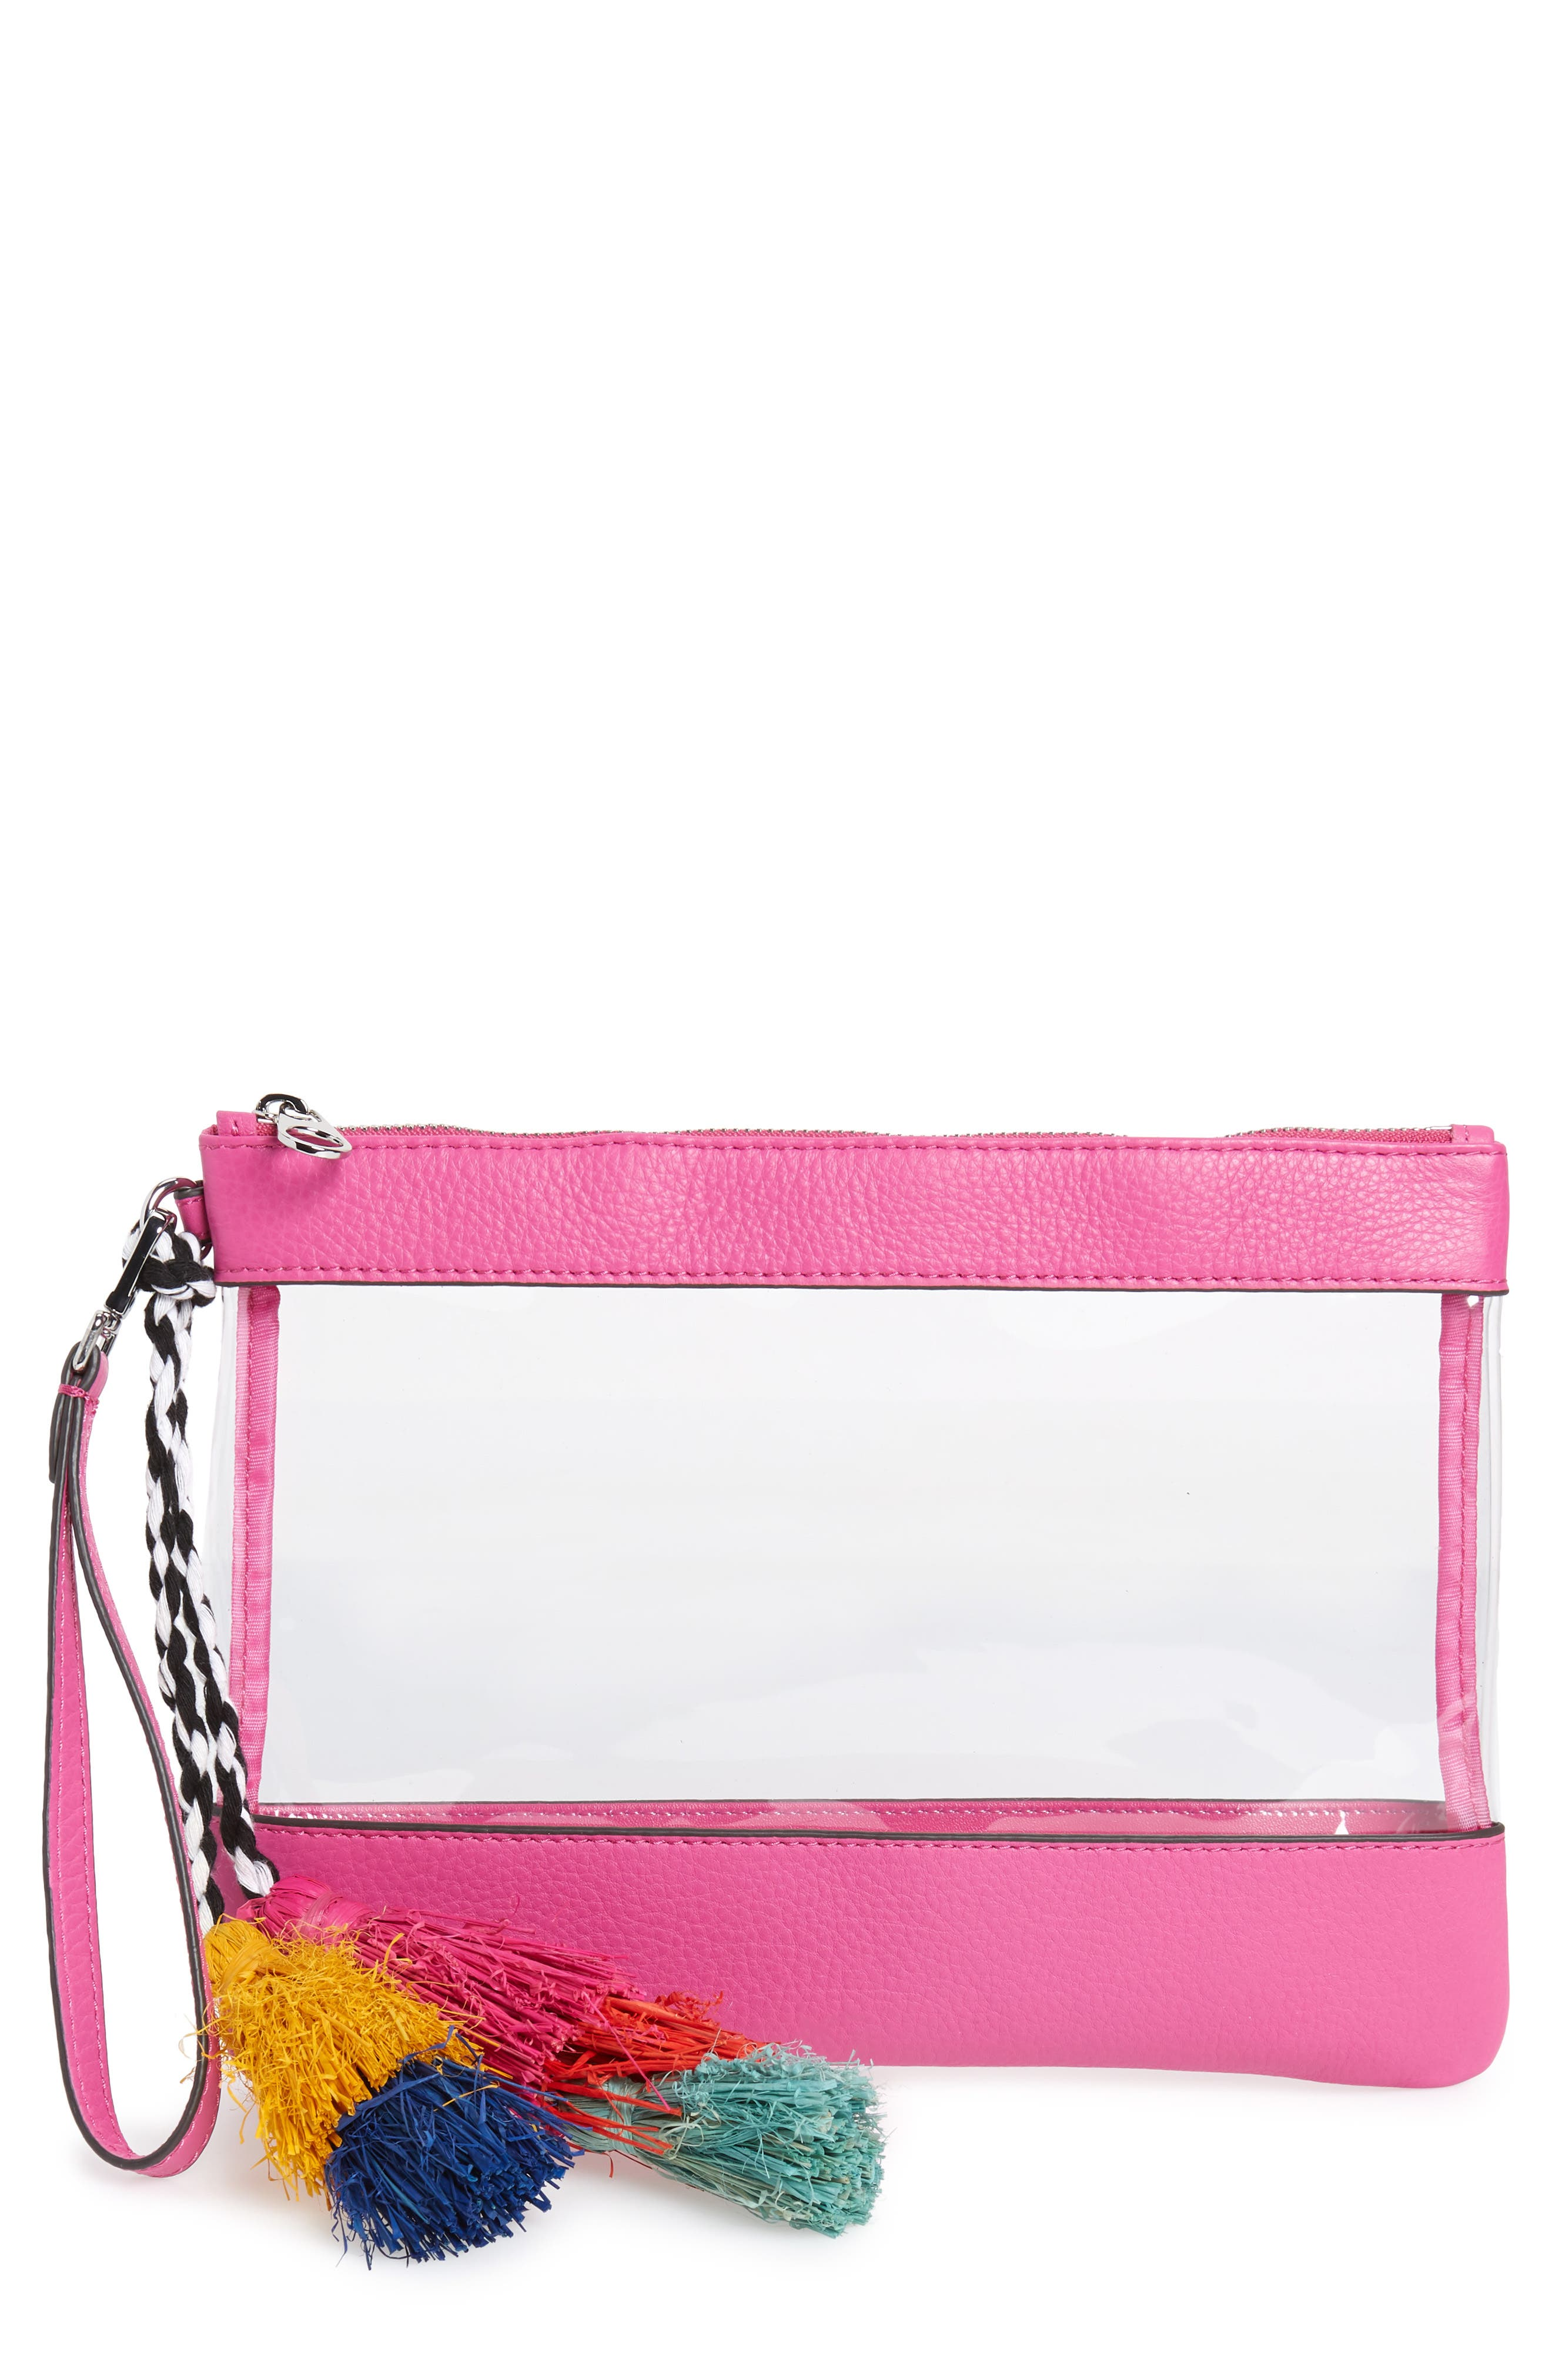 Thore Clear Tassel Wristlet Clutch,                         Main,                         color, Phlox Pink/ Clear